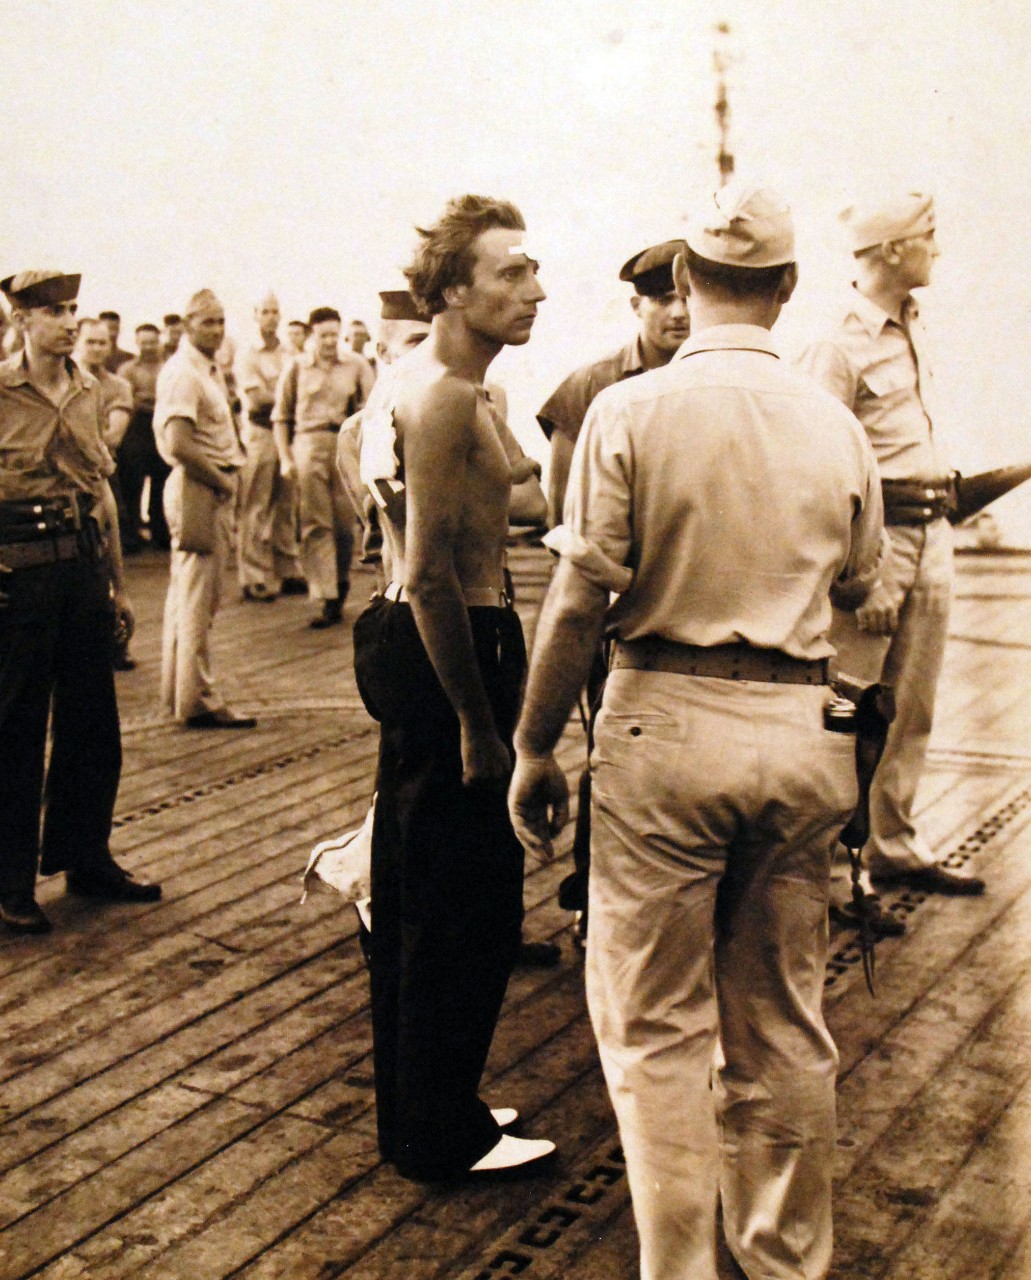 The Master-At-Arms and sailors, many armed, direct the German survivors as they gather on the flight deck of Core (CVE-13), 24 August 1943. Kapitänleutnant August Maus, U-185's commanding officer, stands wounded but defiant in the center. (Unattributed U.S. Navy Photograph 80-G-77199, National Archives and Records Administration, Still Pictures Branch, College Park, Md.)